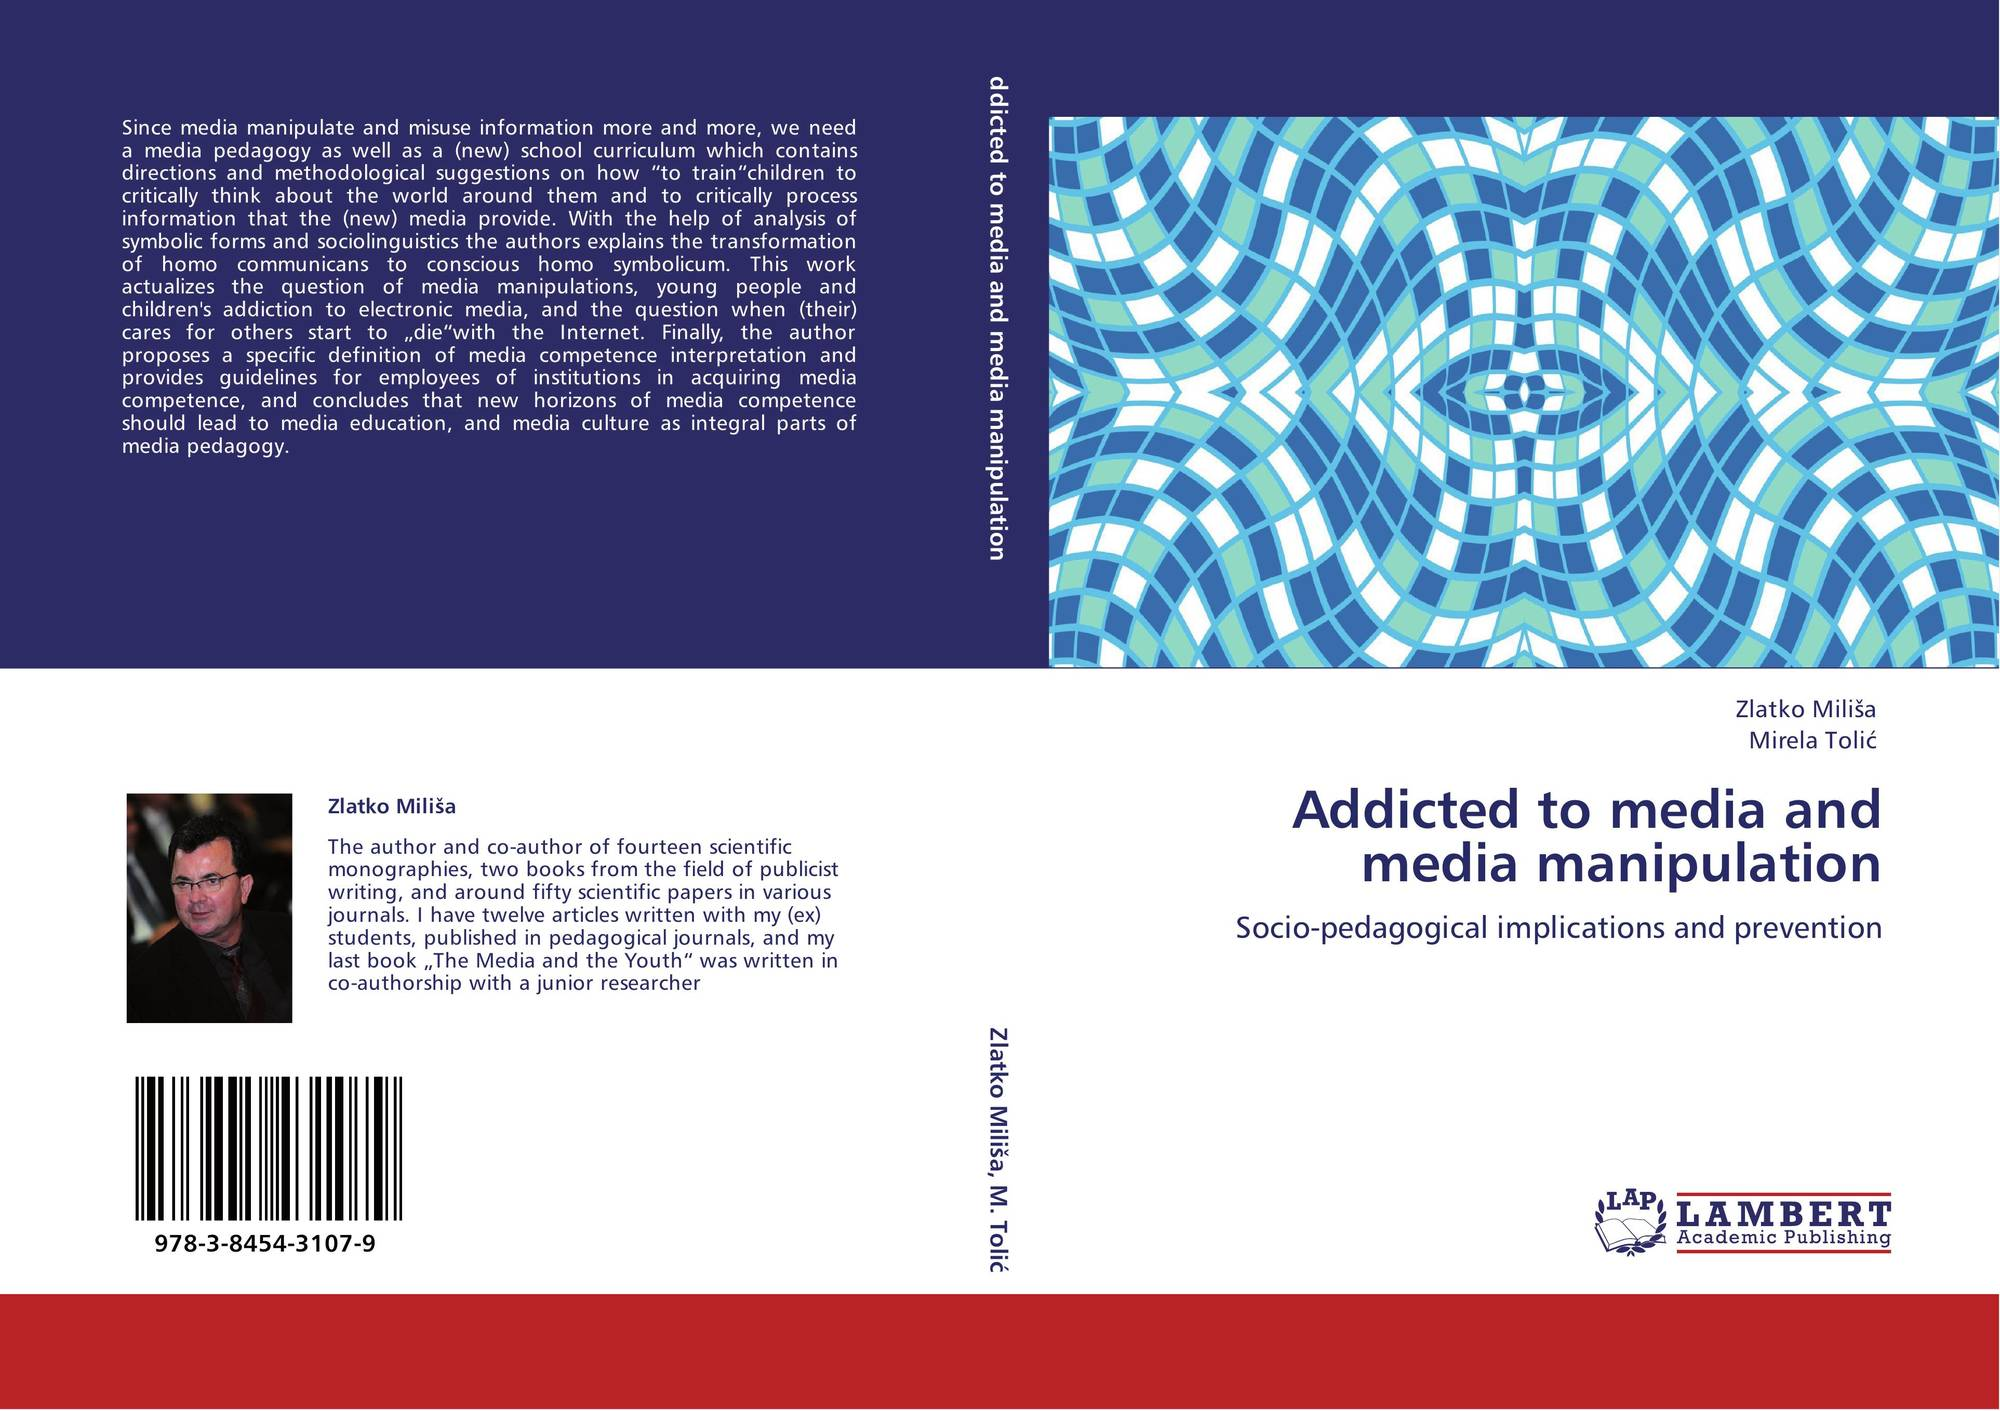 english media manipulation Title: manipulation and abuse on social media  as social media activity became increasingly intertwined with the events in the offline world, individuals and organizations have found ways to exploit these platforms to spread misinformation, to attack and smear others, or to deceive and manipulate.